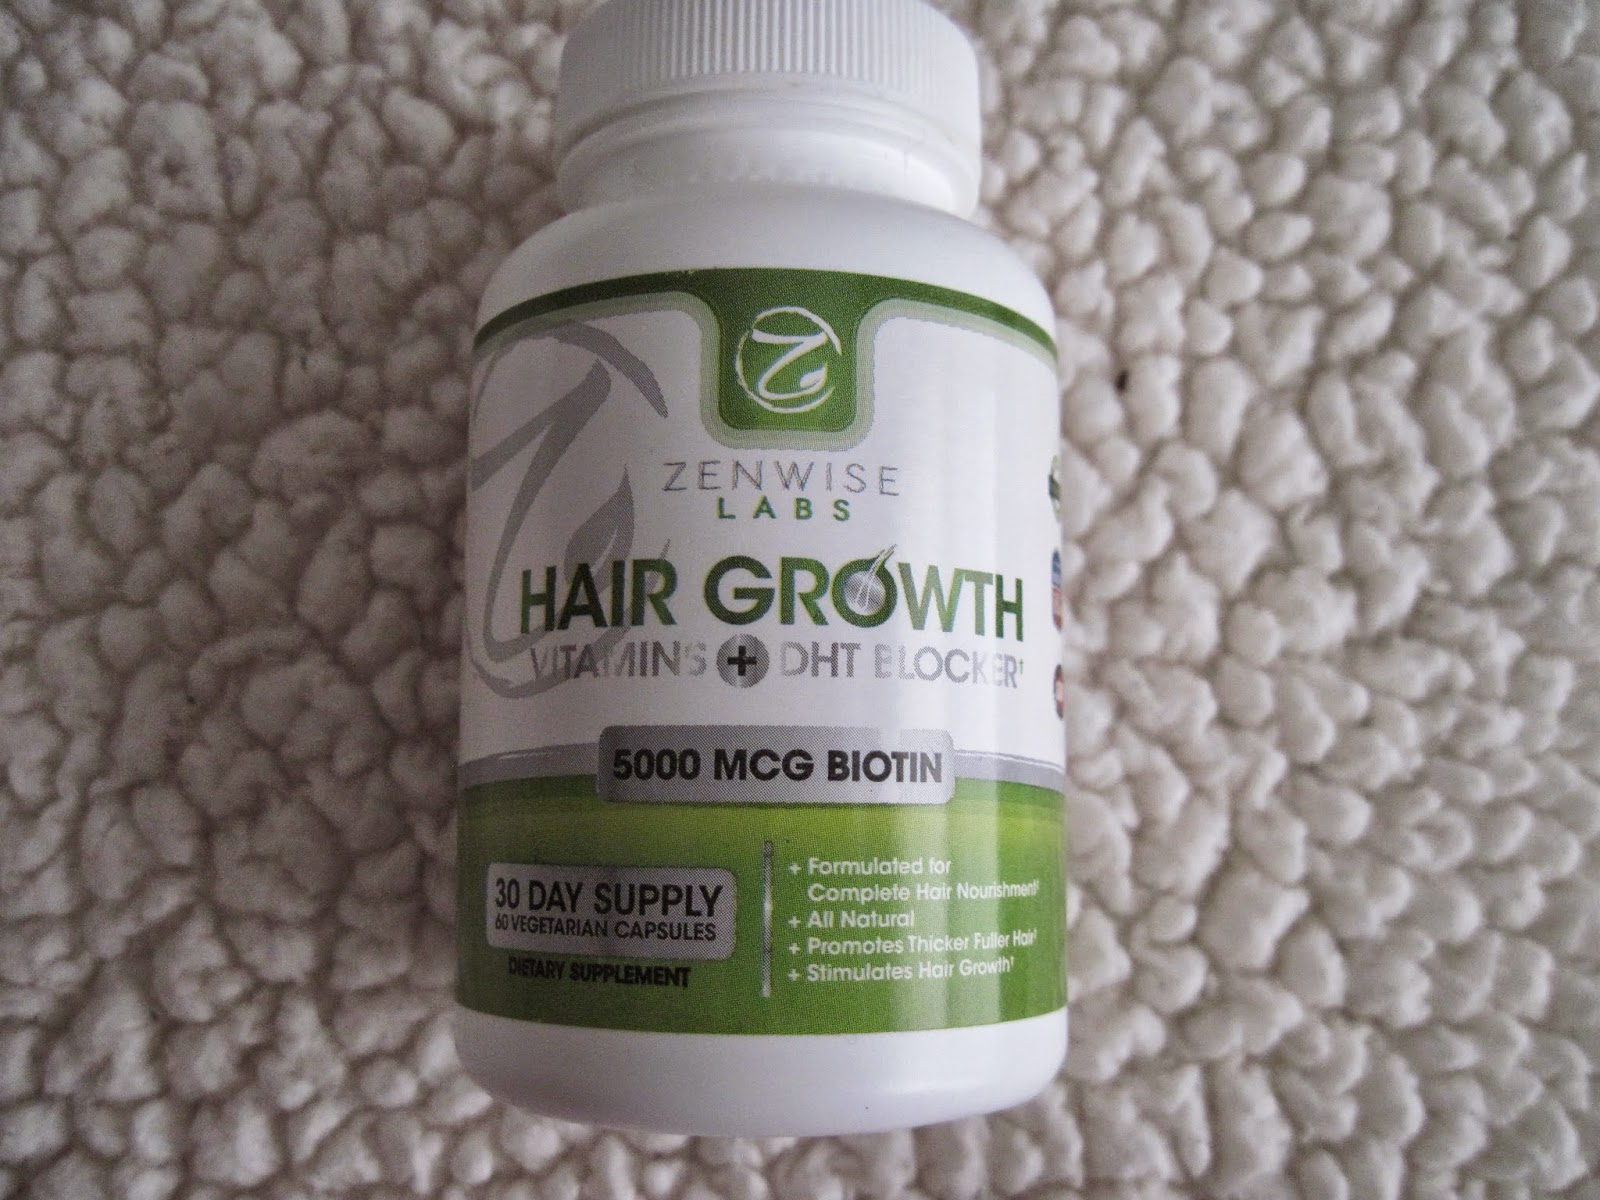 Skin Stuff by Katy: Review: ZenWise Labs Hair Growth Vitamins + DHT